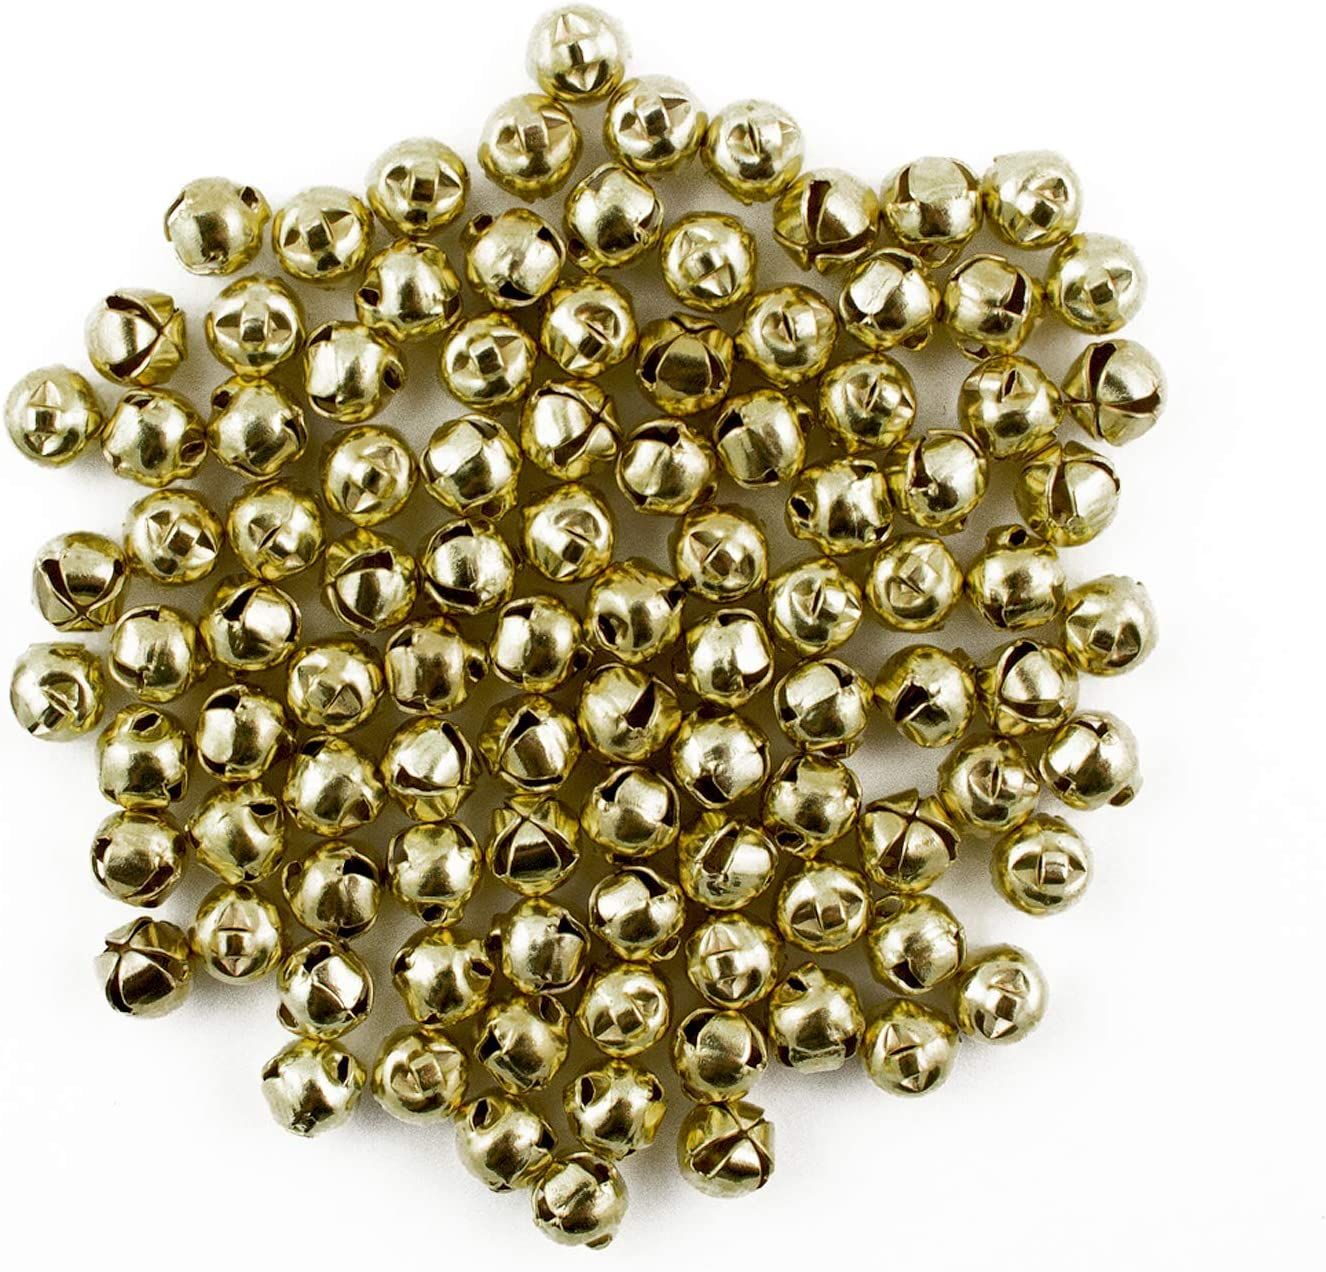 100 Tiny Brass Bells Beads Charms Bronze Bells Eastern Jewelry Making Craft 6mm